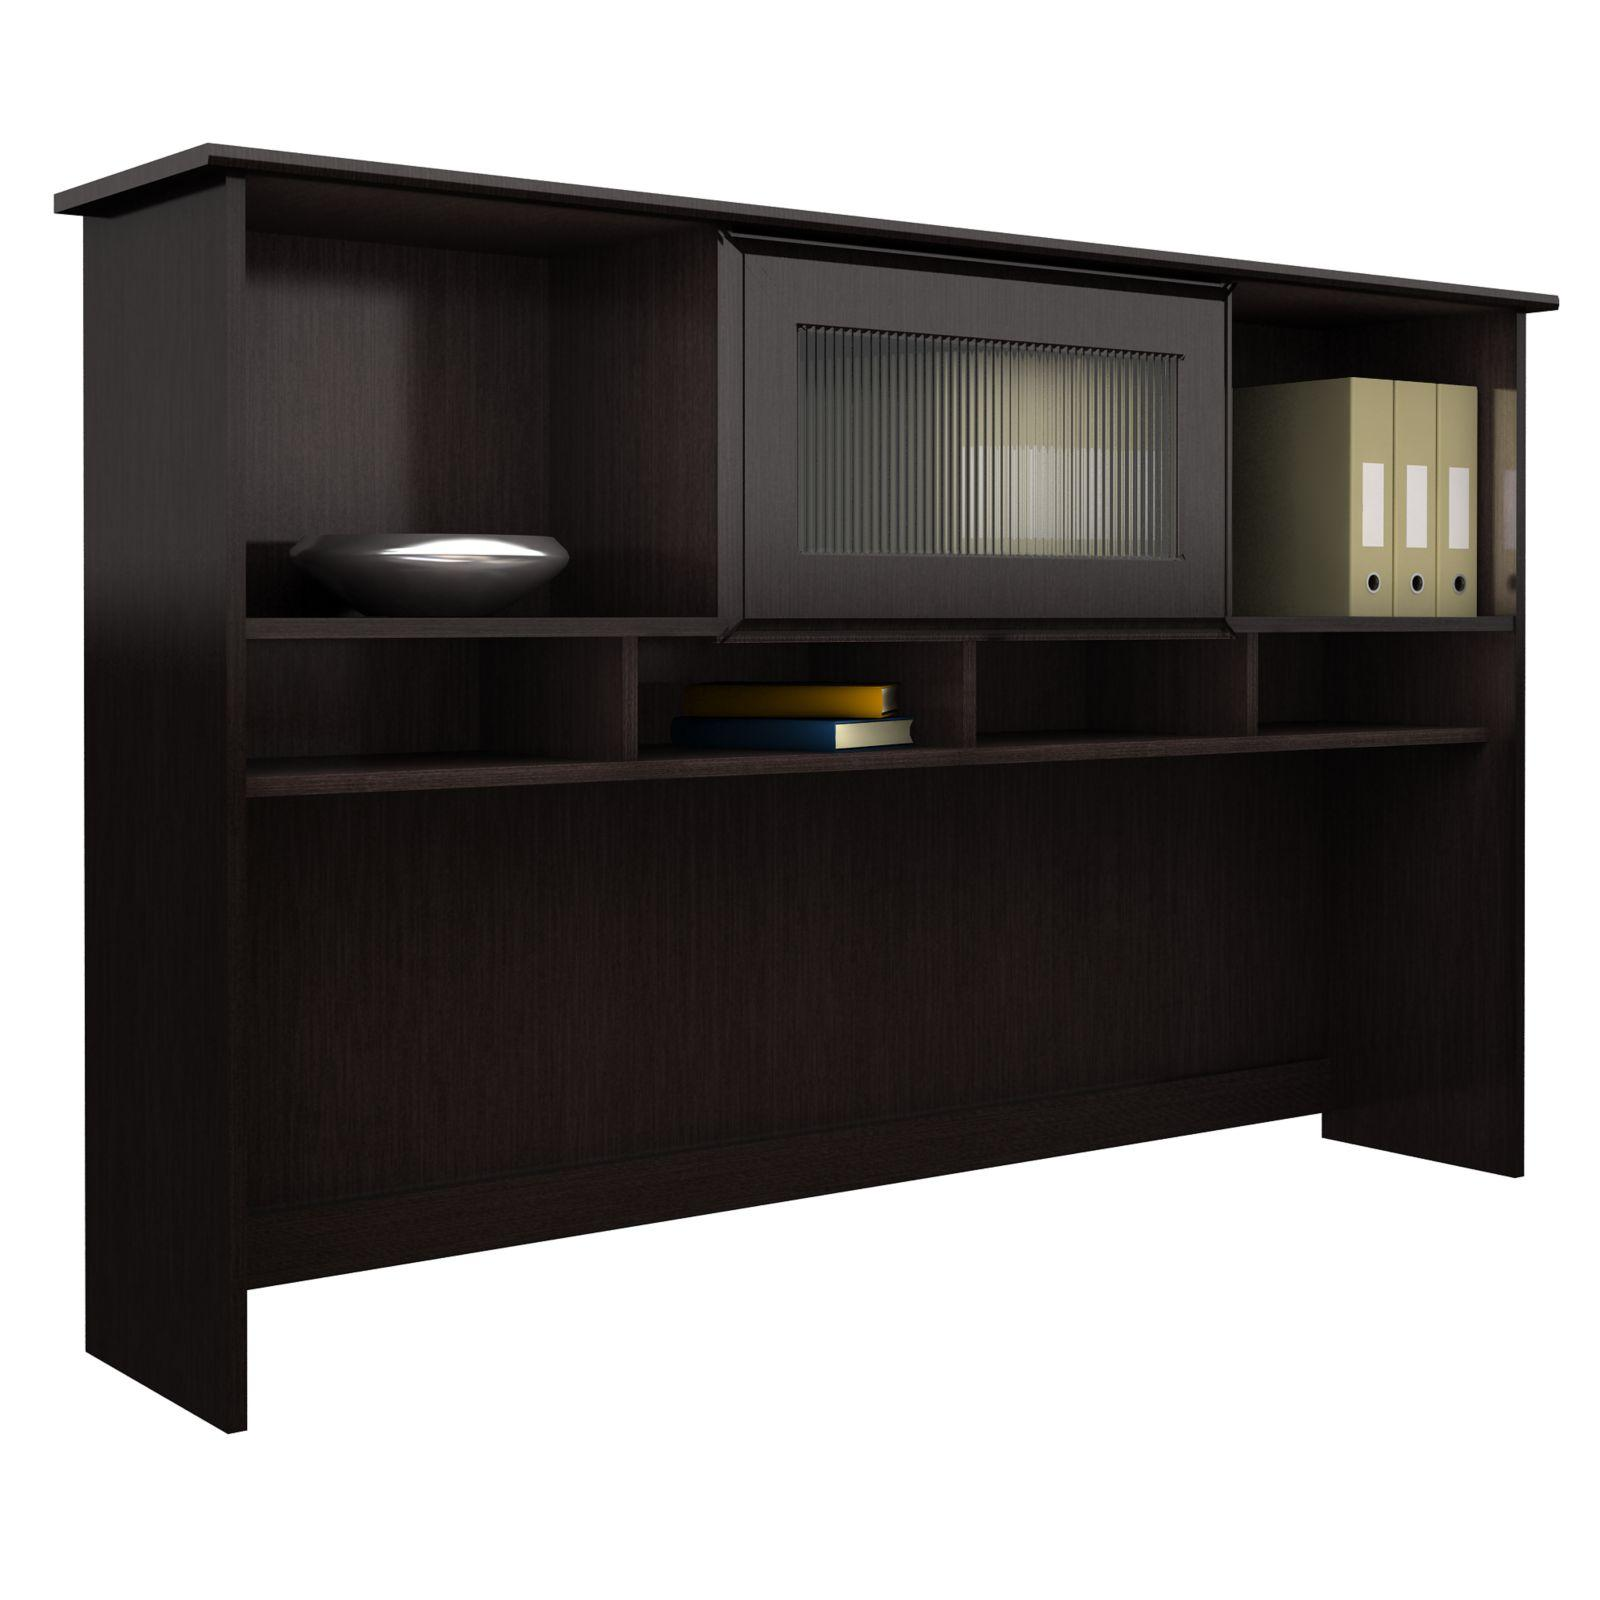 Good Bush Furniture, Bush Industries, Lateral File Cabinet, Lateral File, File  Cabinet,